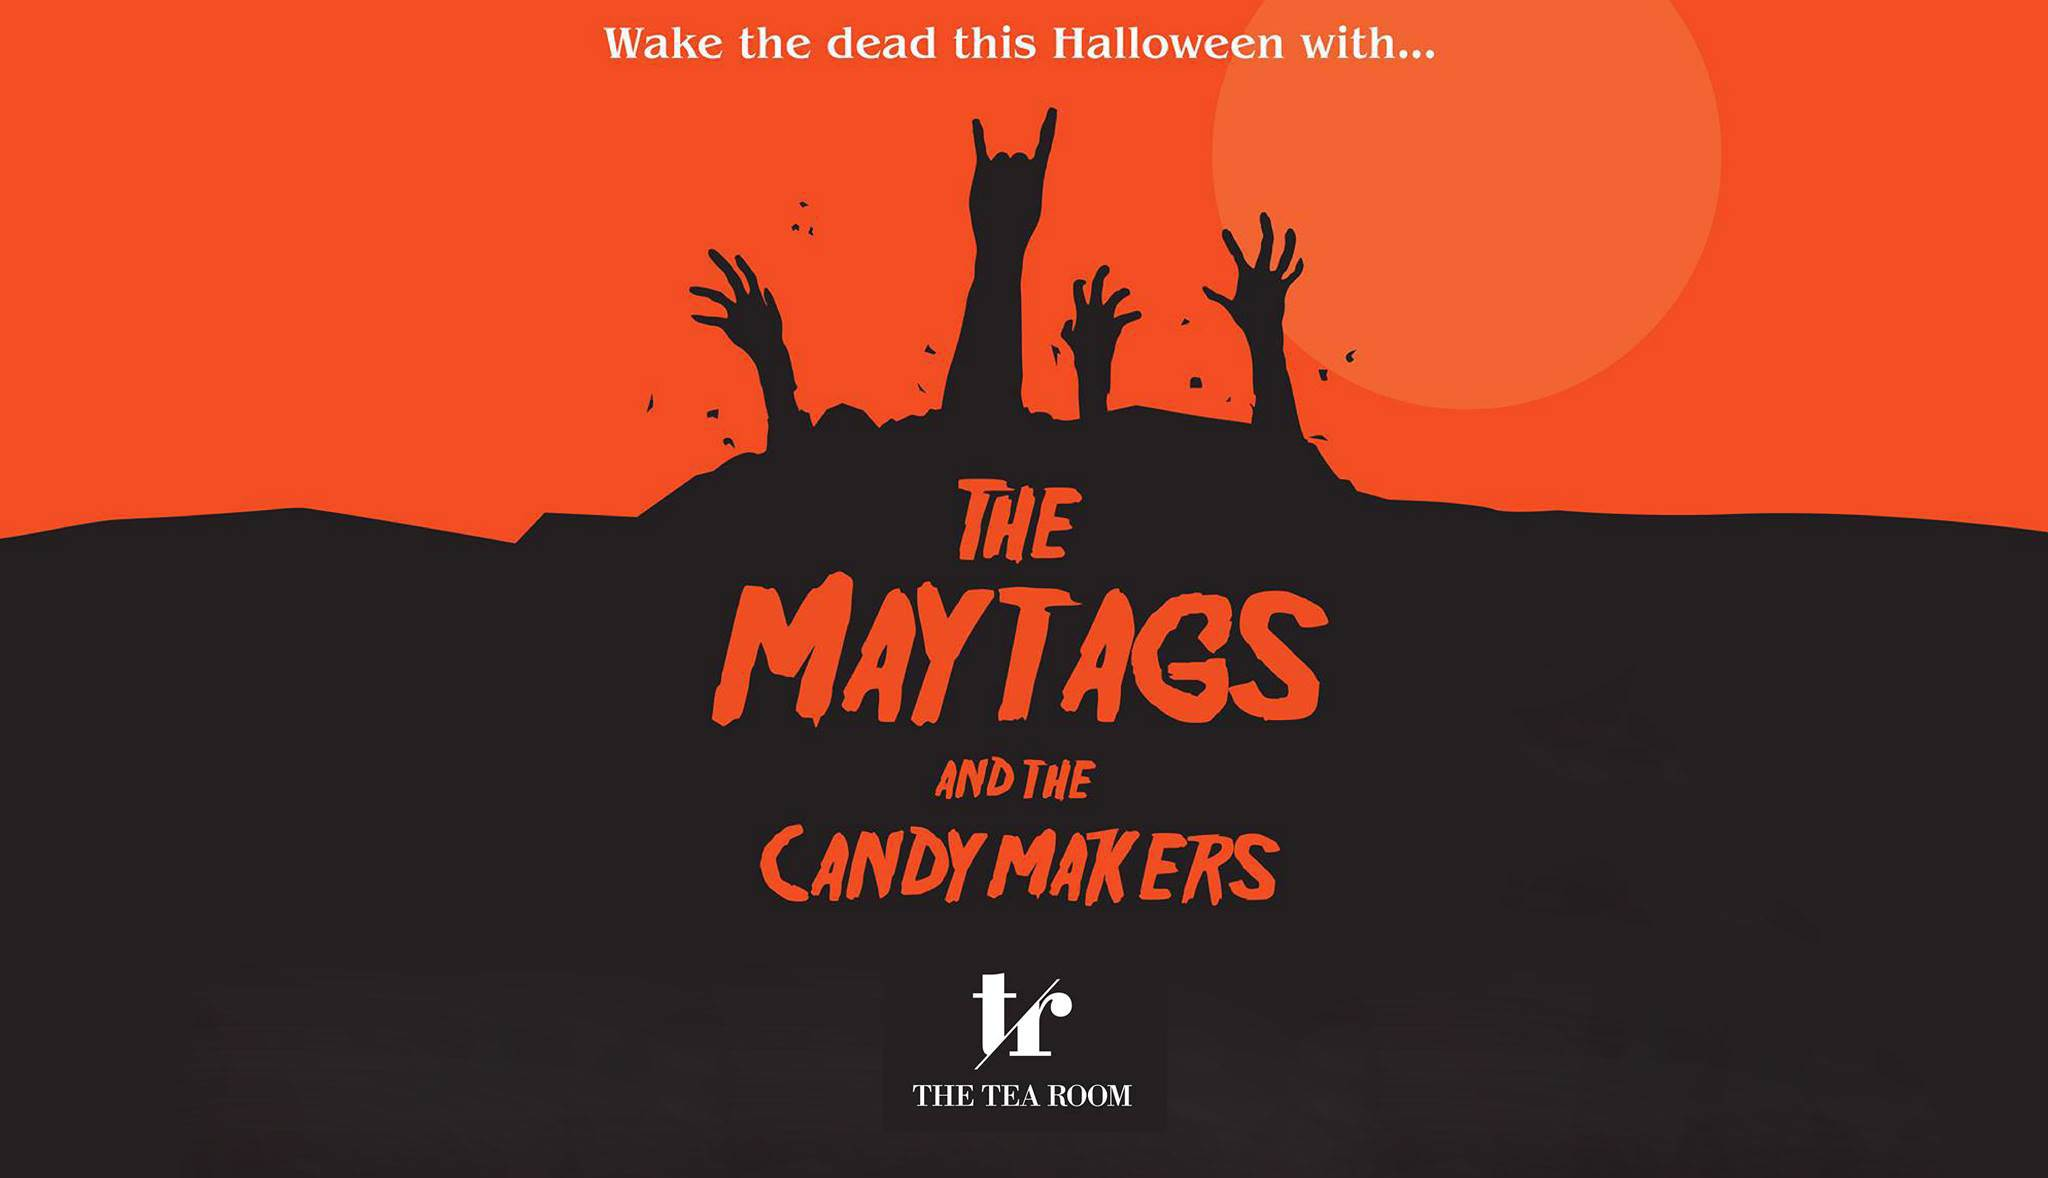 nightmare on walnut street with the maytags